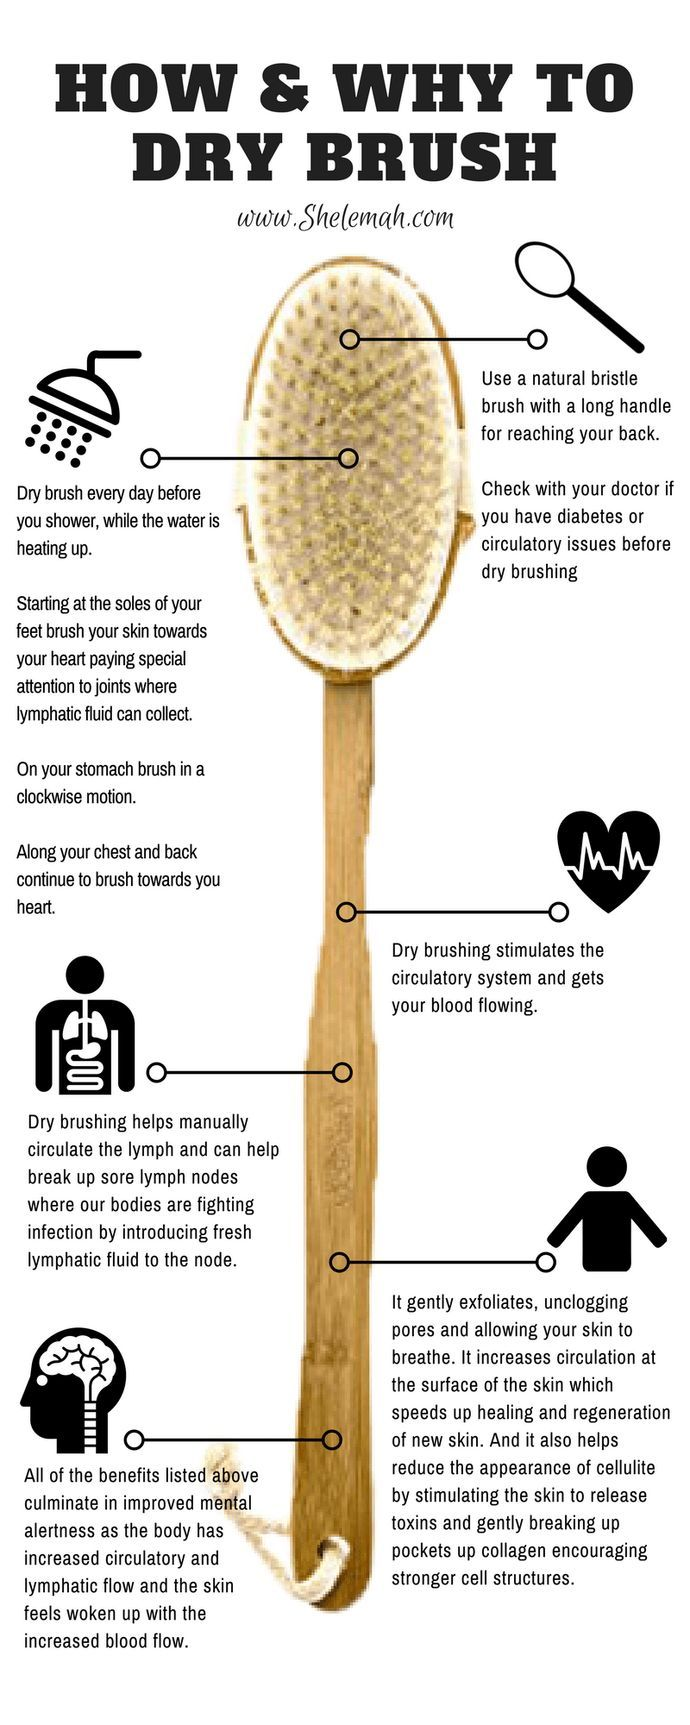 Dry Brushing for Skin, Circulatory, and Lymphatic Health